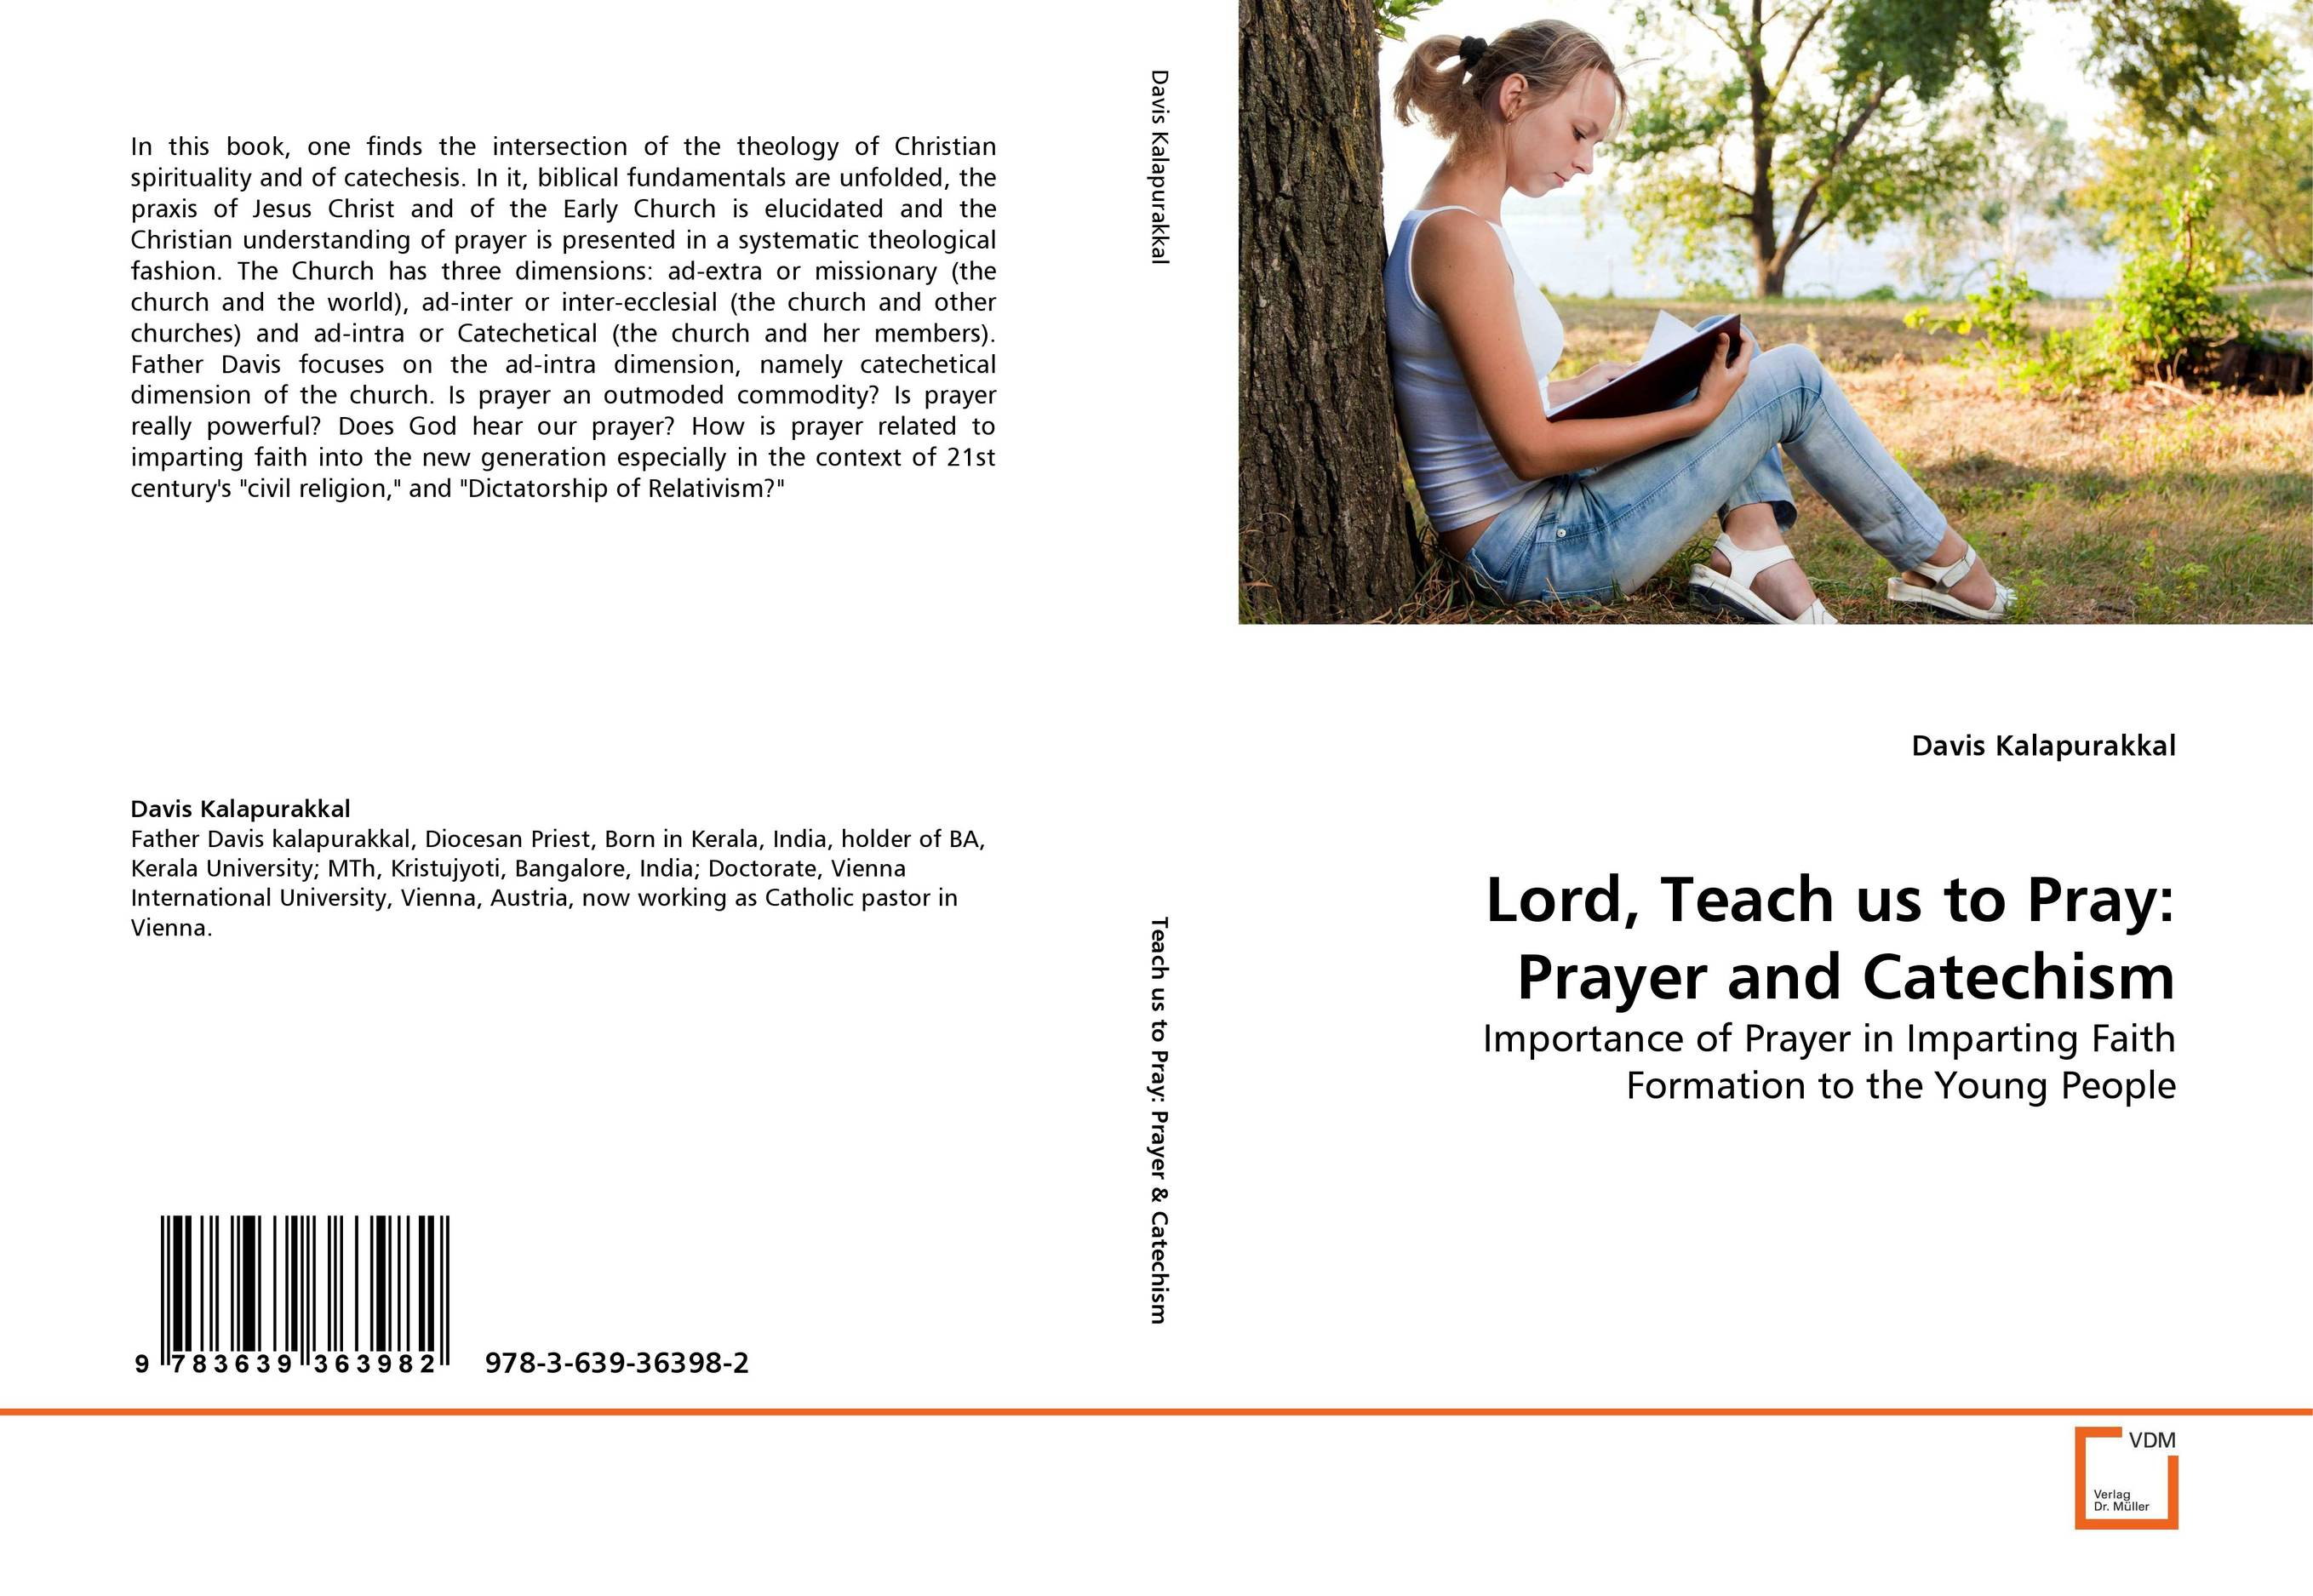 Lord, Teach us to Pray: Prayer and Catechism